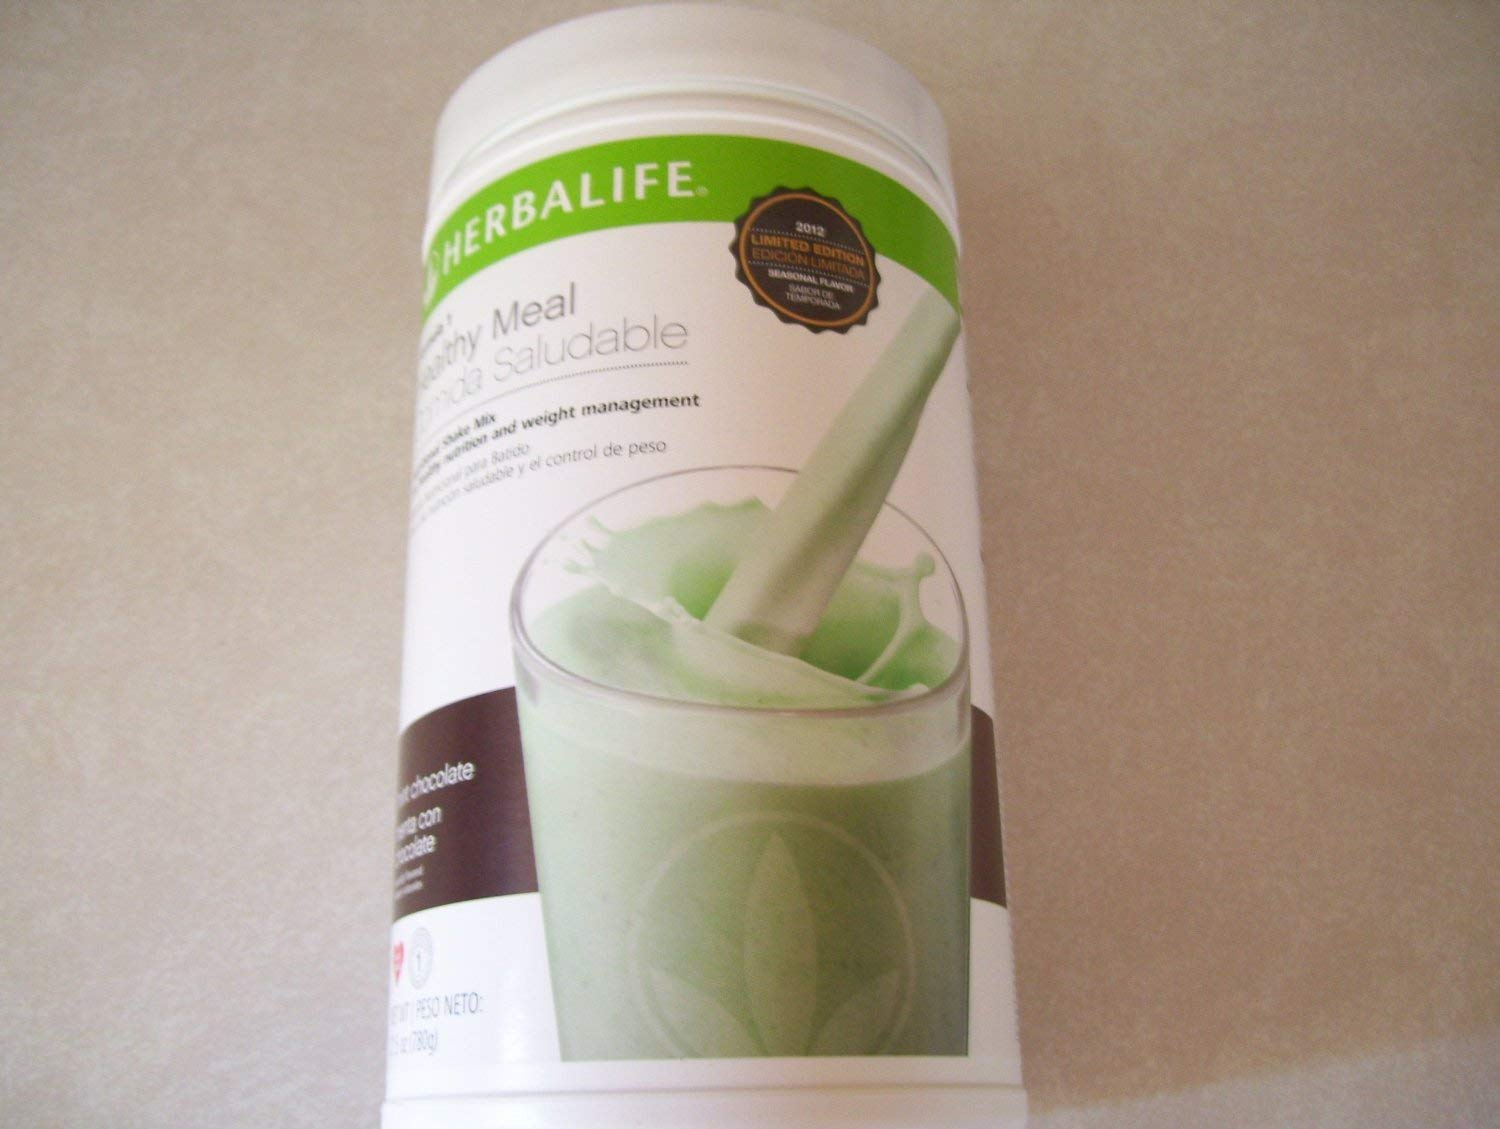 Herbalife Formula1 Healthy Meal Nutritional Shake Mix - Mint Chocolate Chip, 780g/27.5Oz